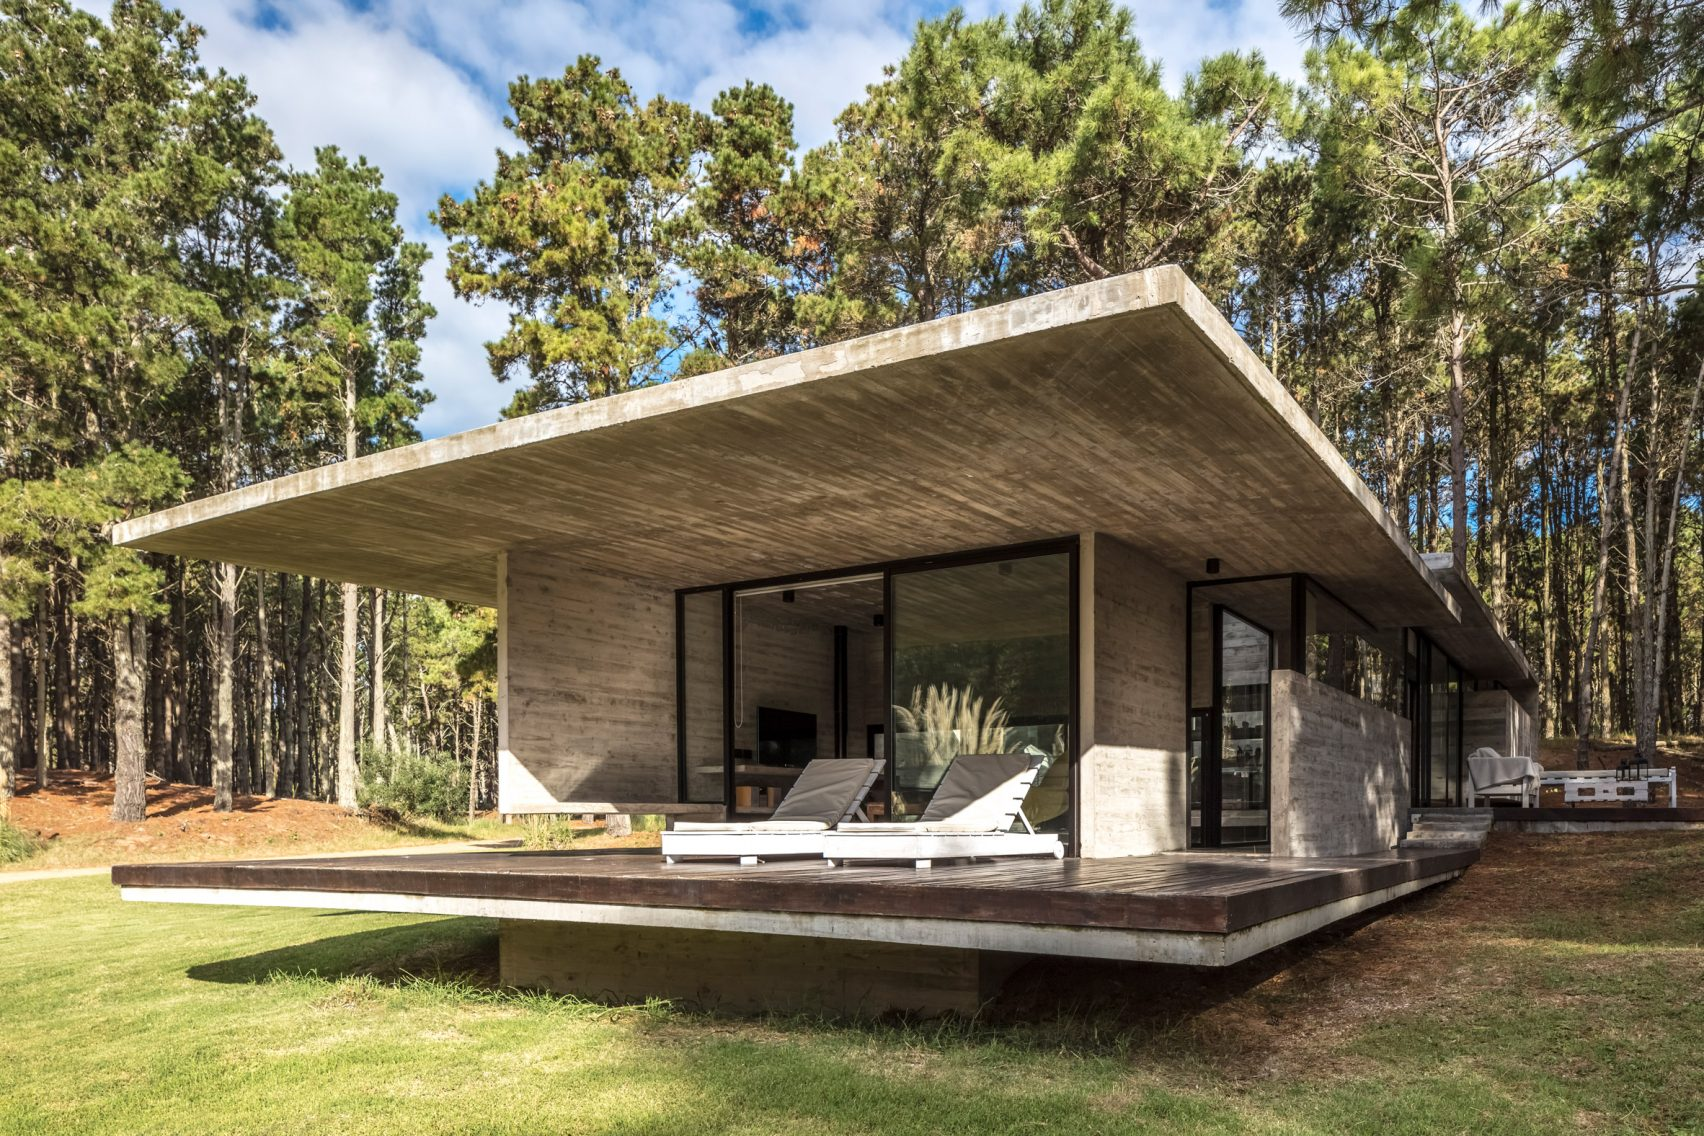 Cool concrete summer home sits among a sea of trees